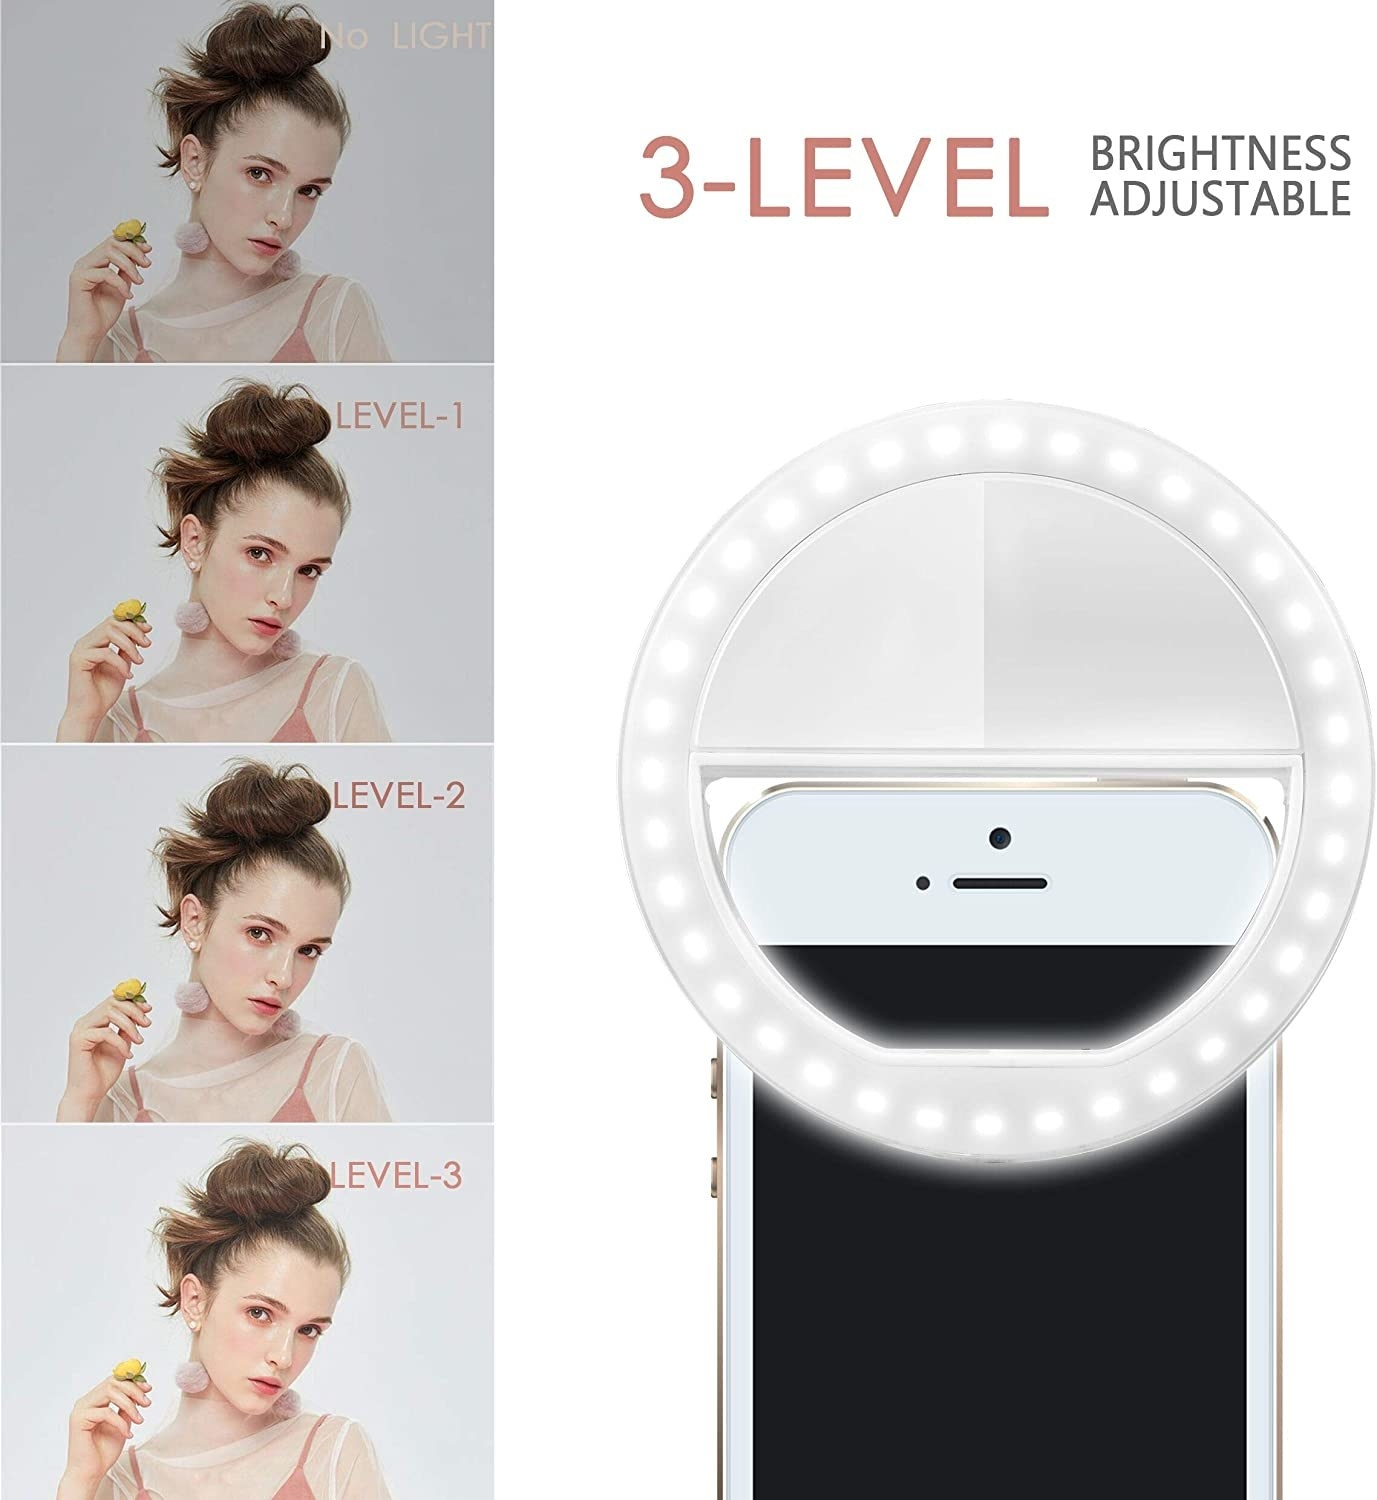 The ring light clipped on a phone, plus an image showing the three light settings